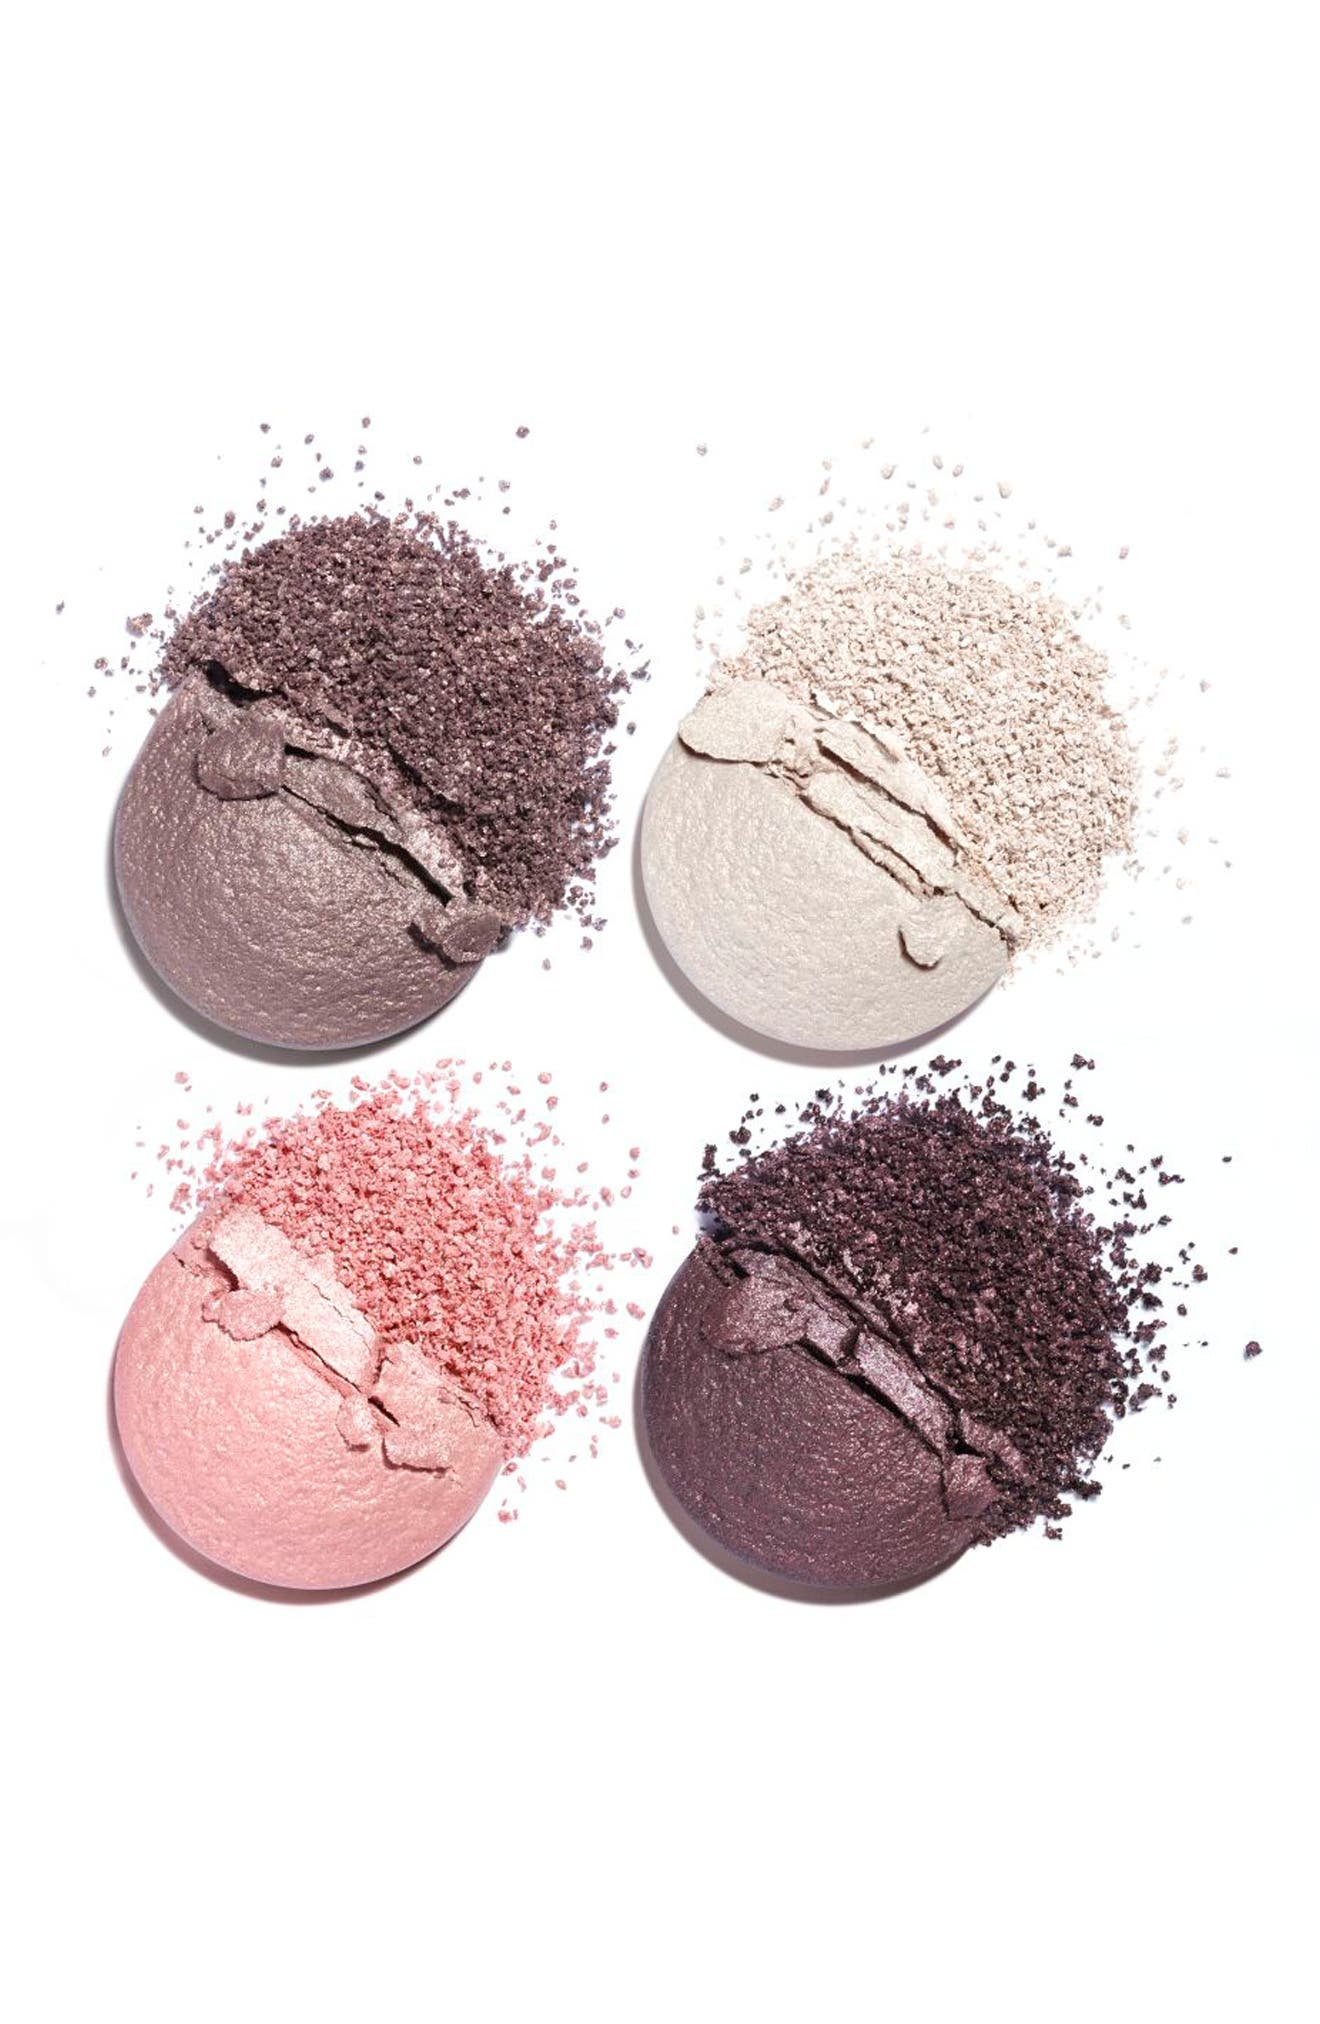 CHANEL, LES 4 OMBRES<br />Multi-Effect Quadra Eyeshadow, Alternate thumbnail 2, color, 202 TISSE CAMELIA